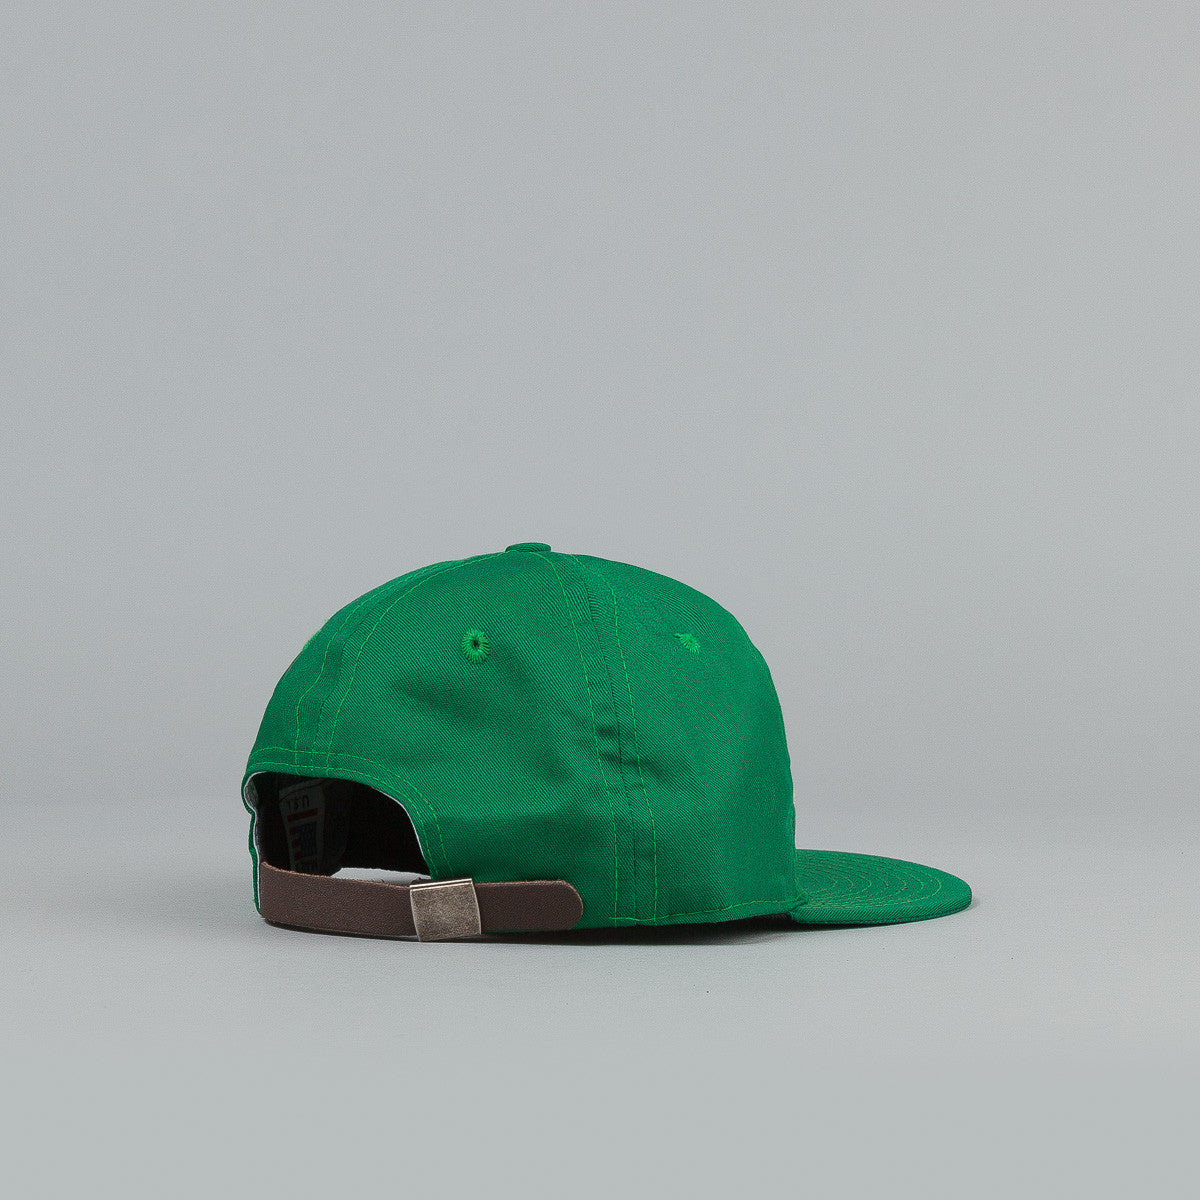 Ebbets Field Flannels NY Black Yankees Strapback Cap - Green